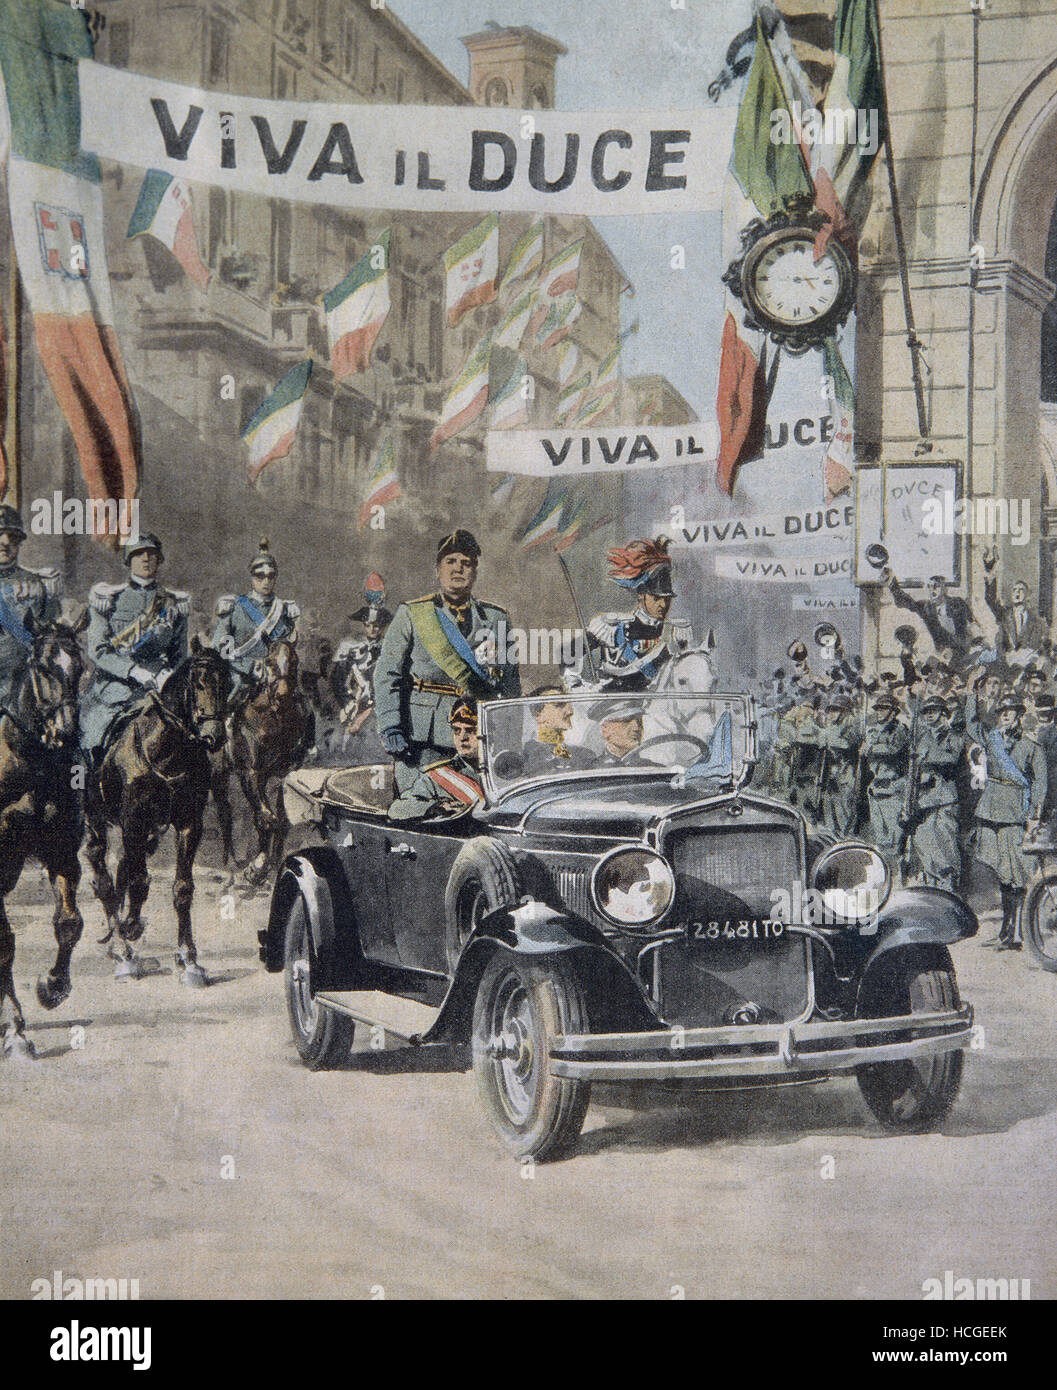 Triumphant arrival of Mussolini in Turin - 1932 - Stock Image